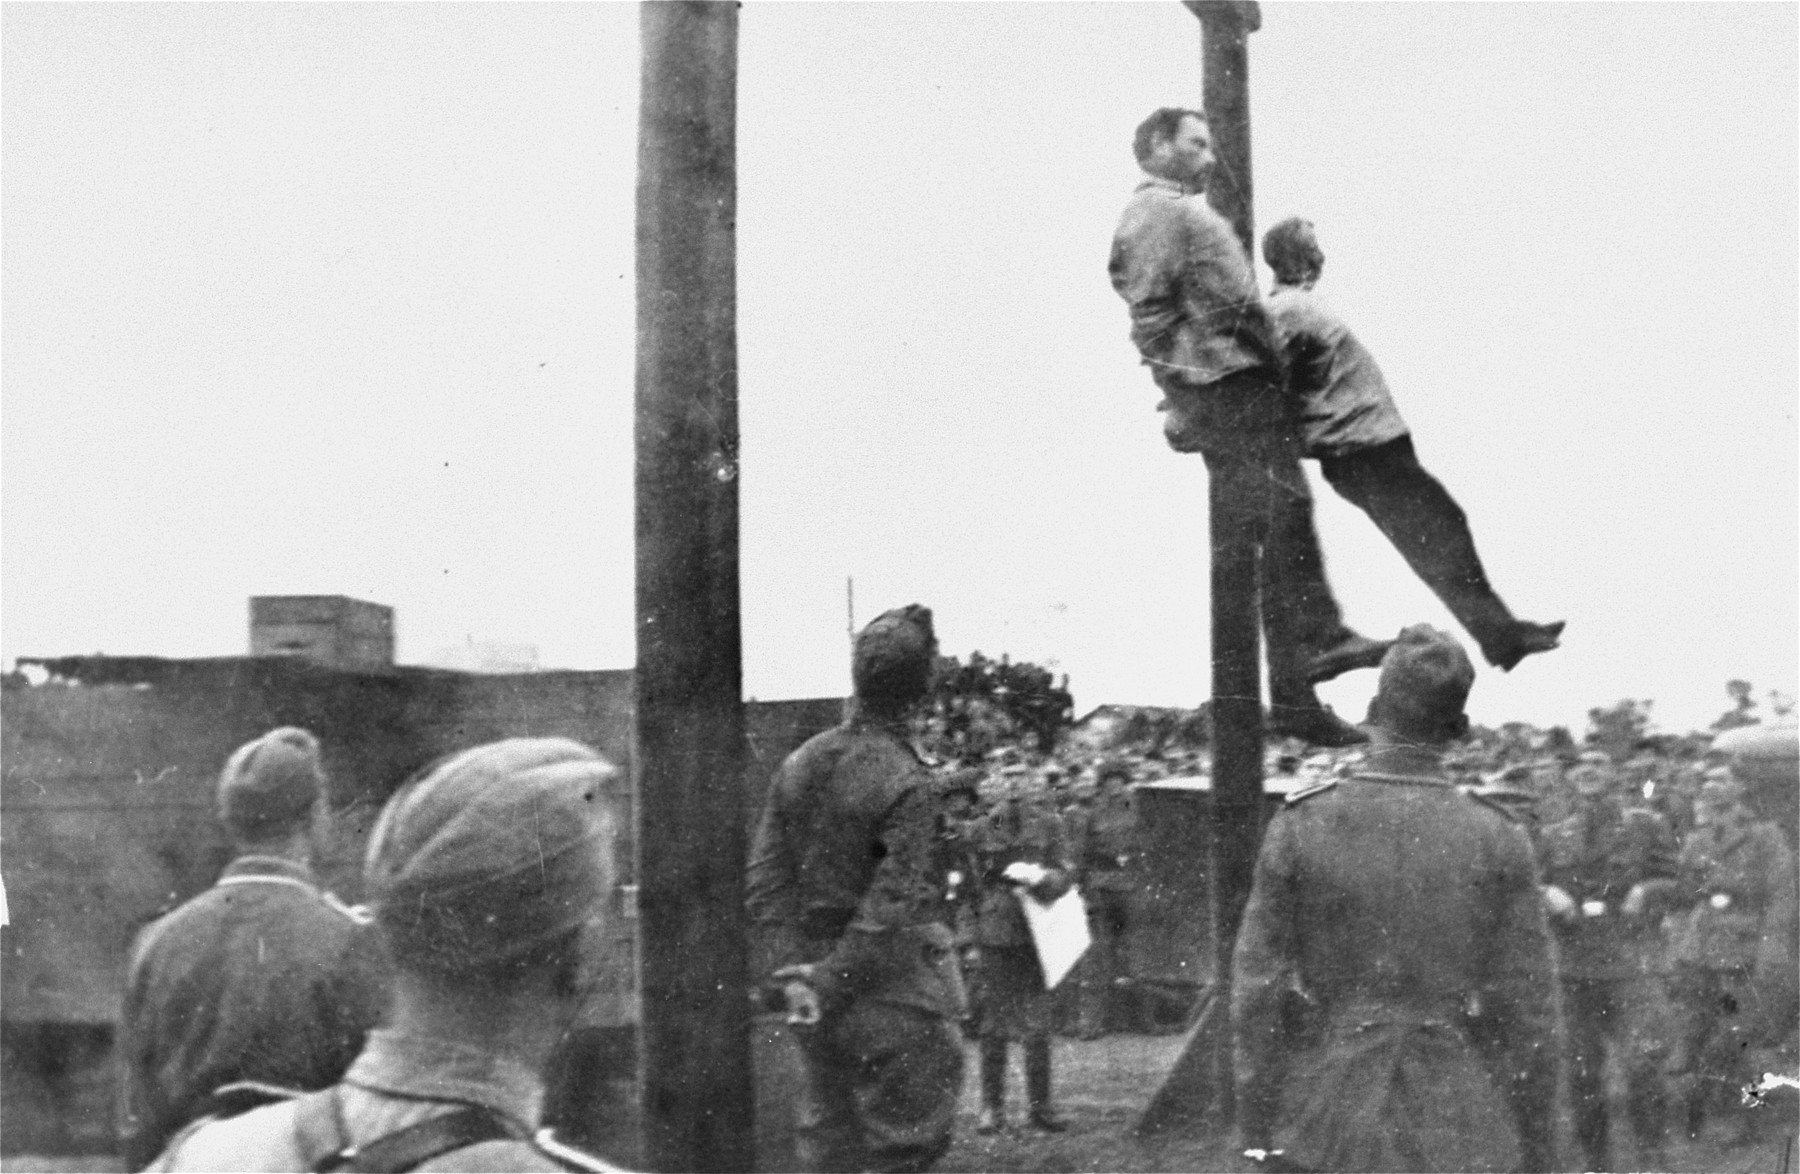 The hanging of Mosche Kogan (left) and Wolf Kieper on the market square in Zhitomir.